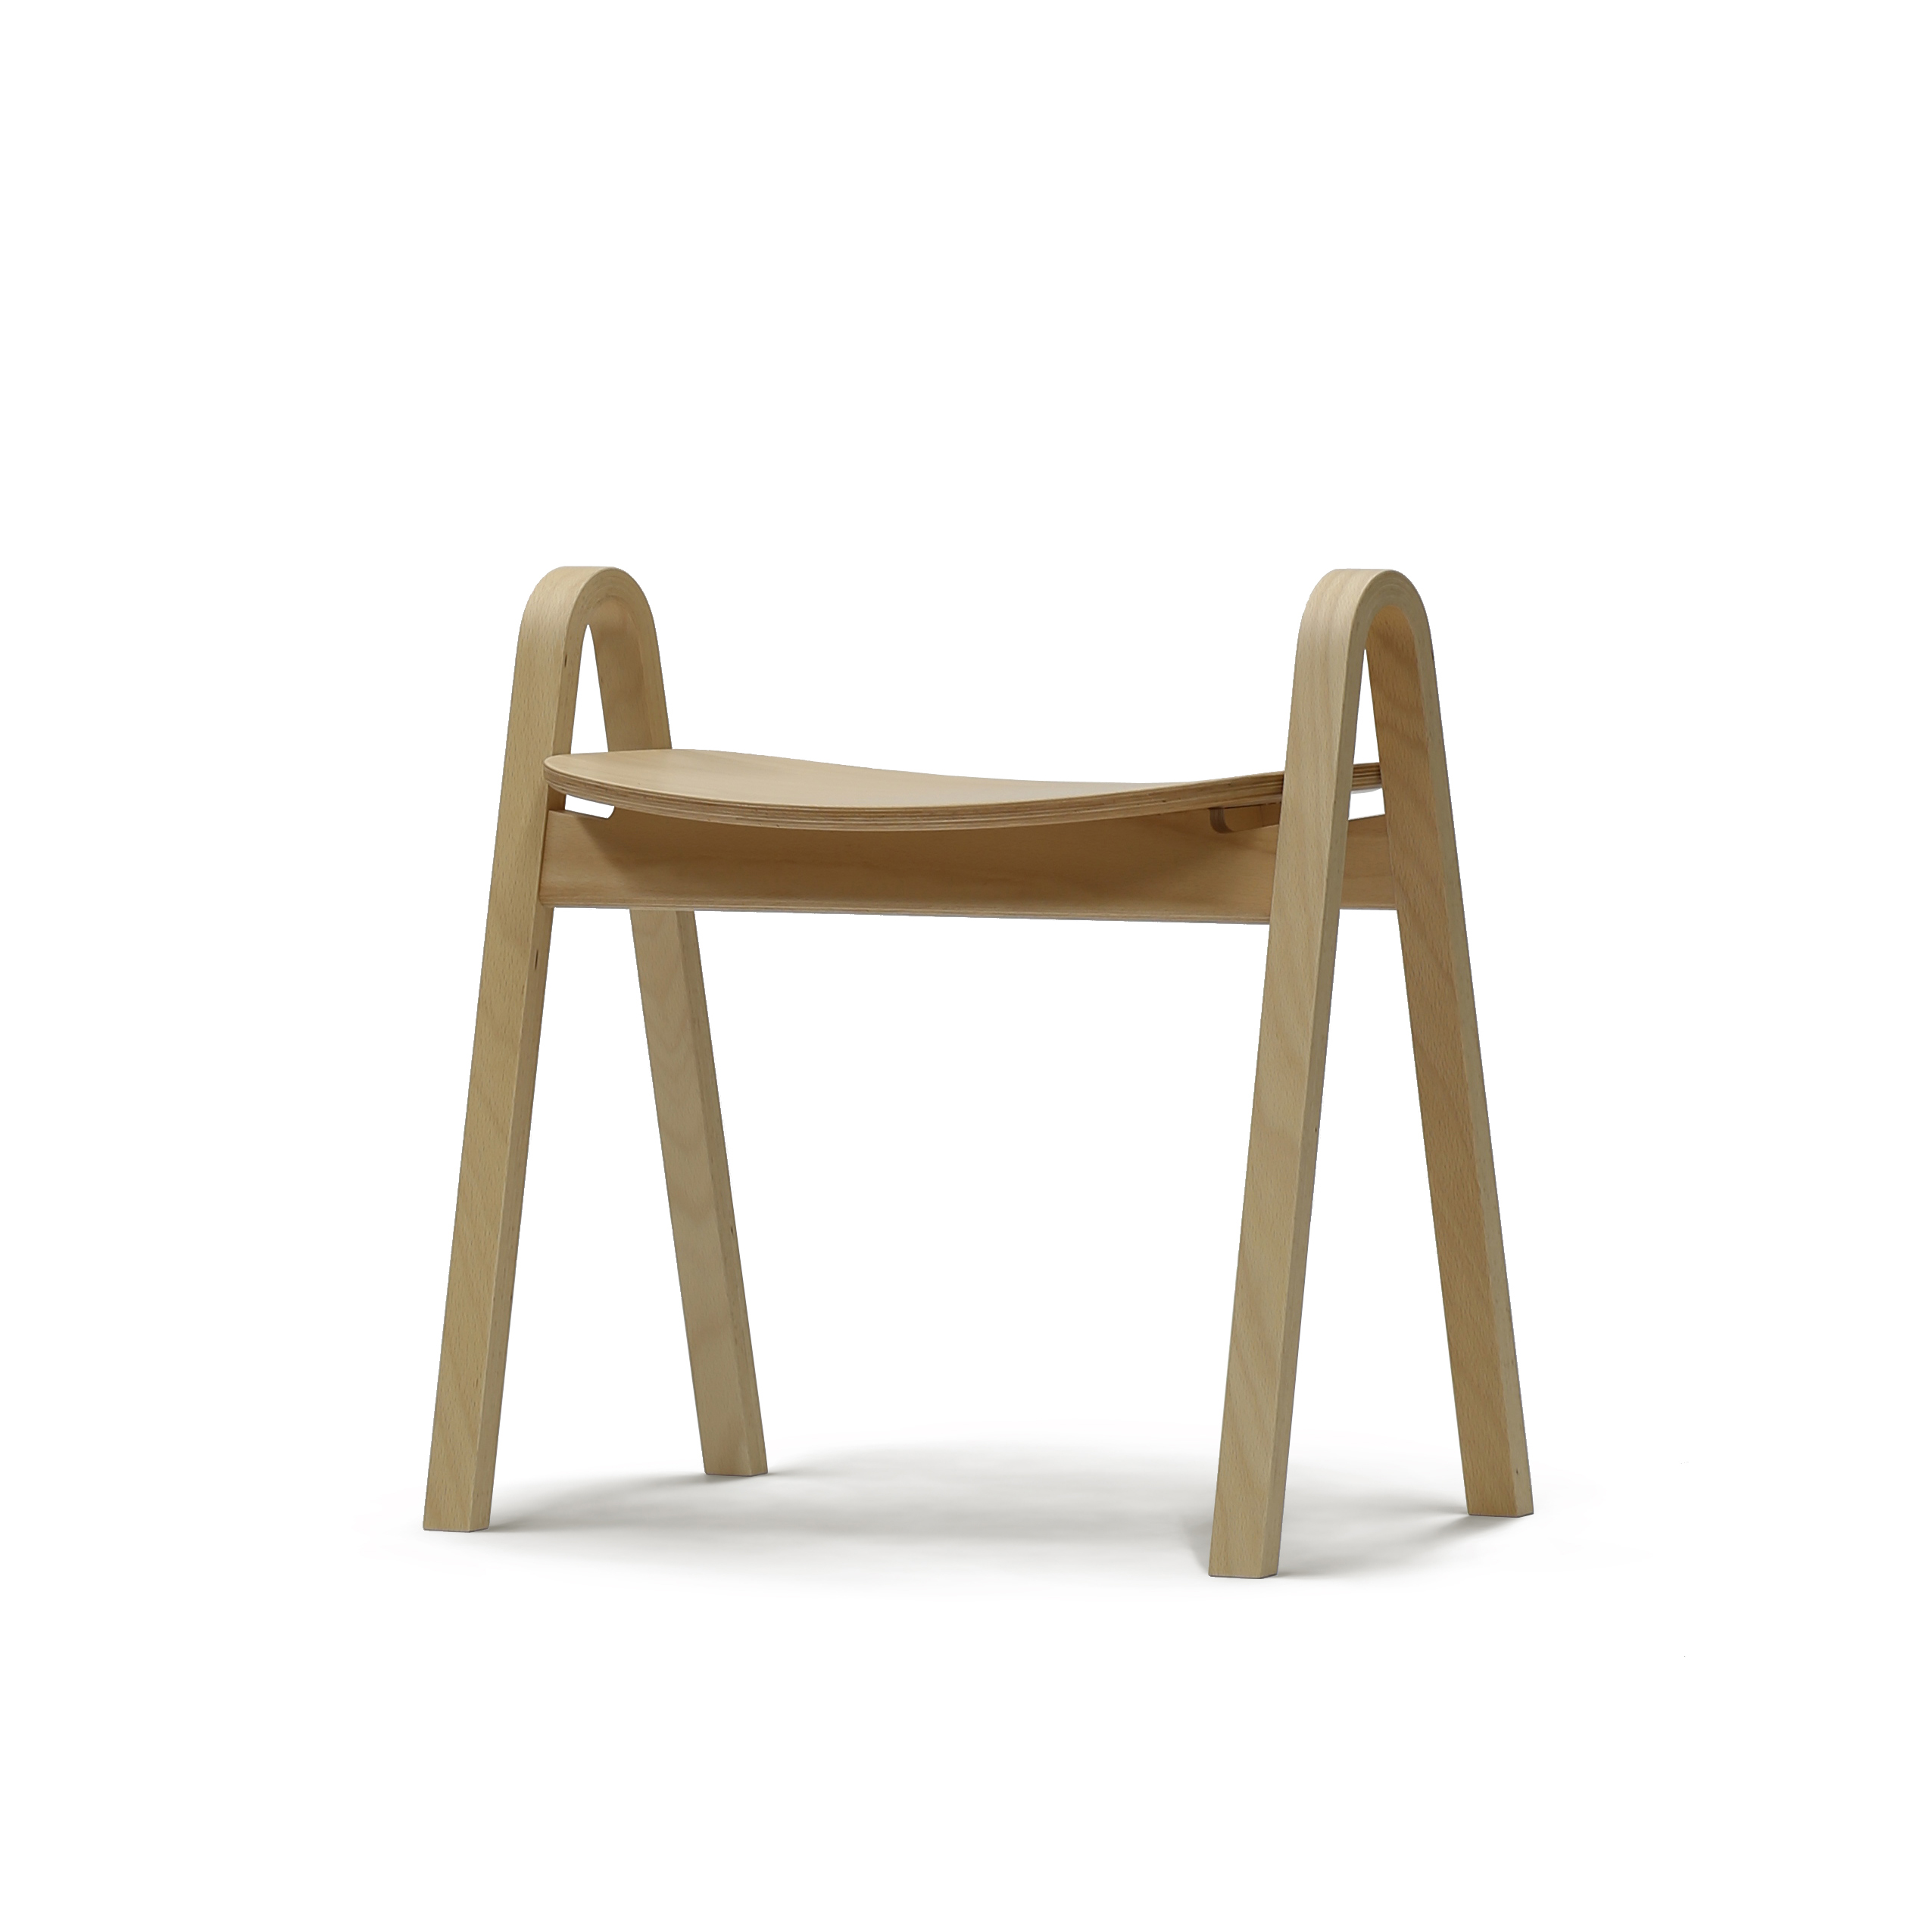 Cu-03 STACKING STOOL